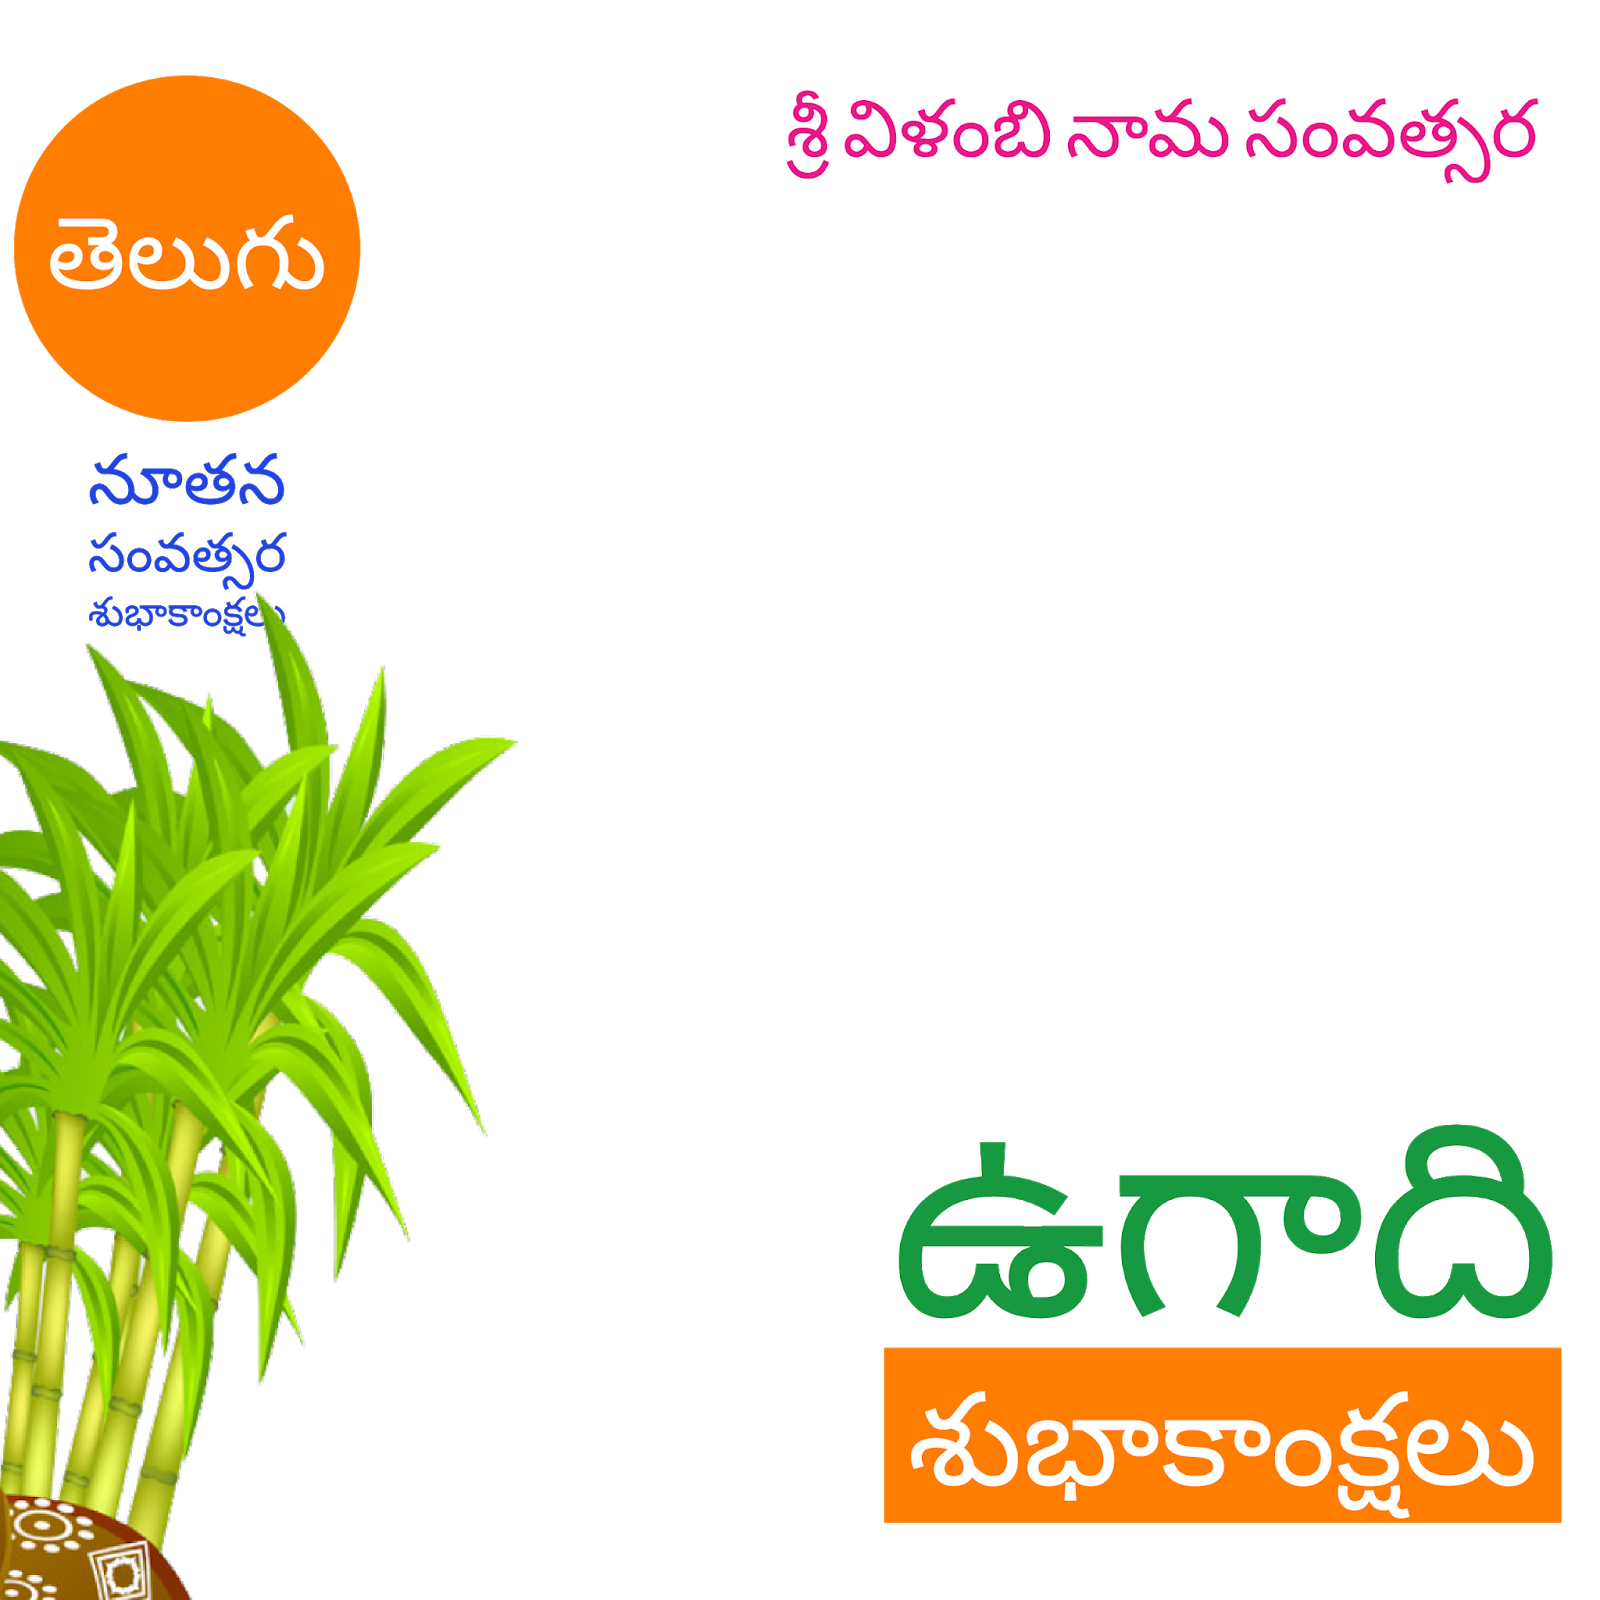 Greetingsve free hd images to express wishes all occasions free ugadi facebook frames 2 m4hsunfo Image collections